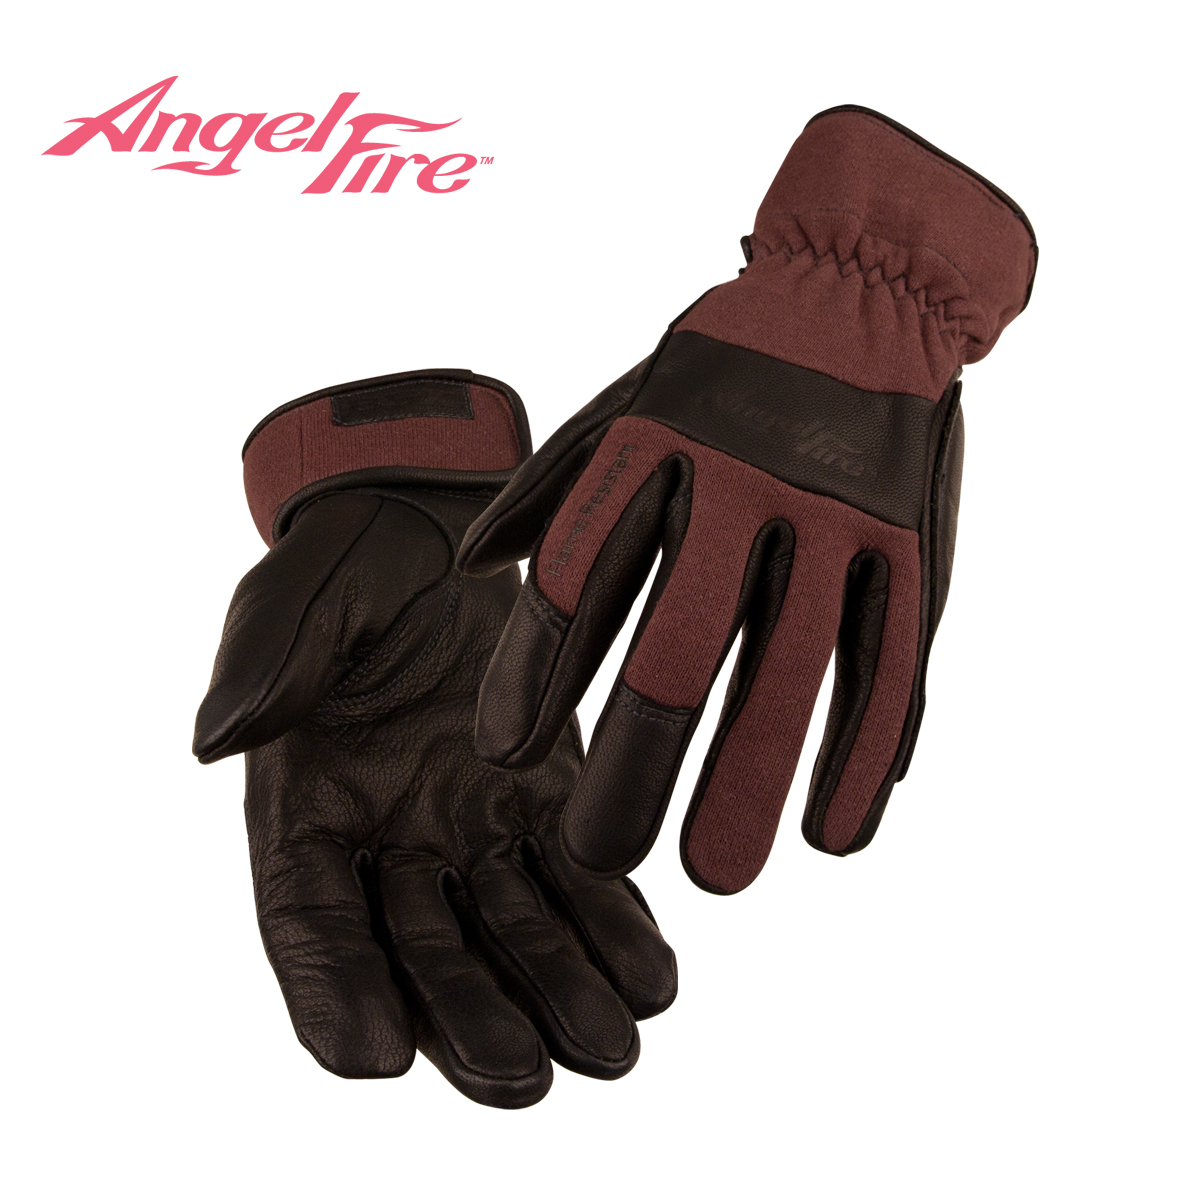 Angelfire Womens Tig Welding Gloves Charm And Hammer